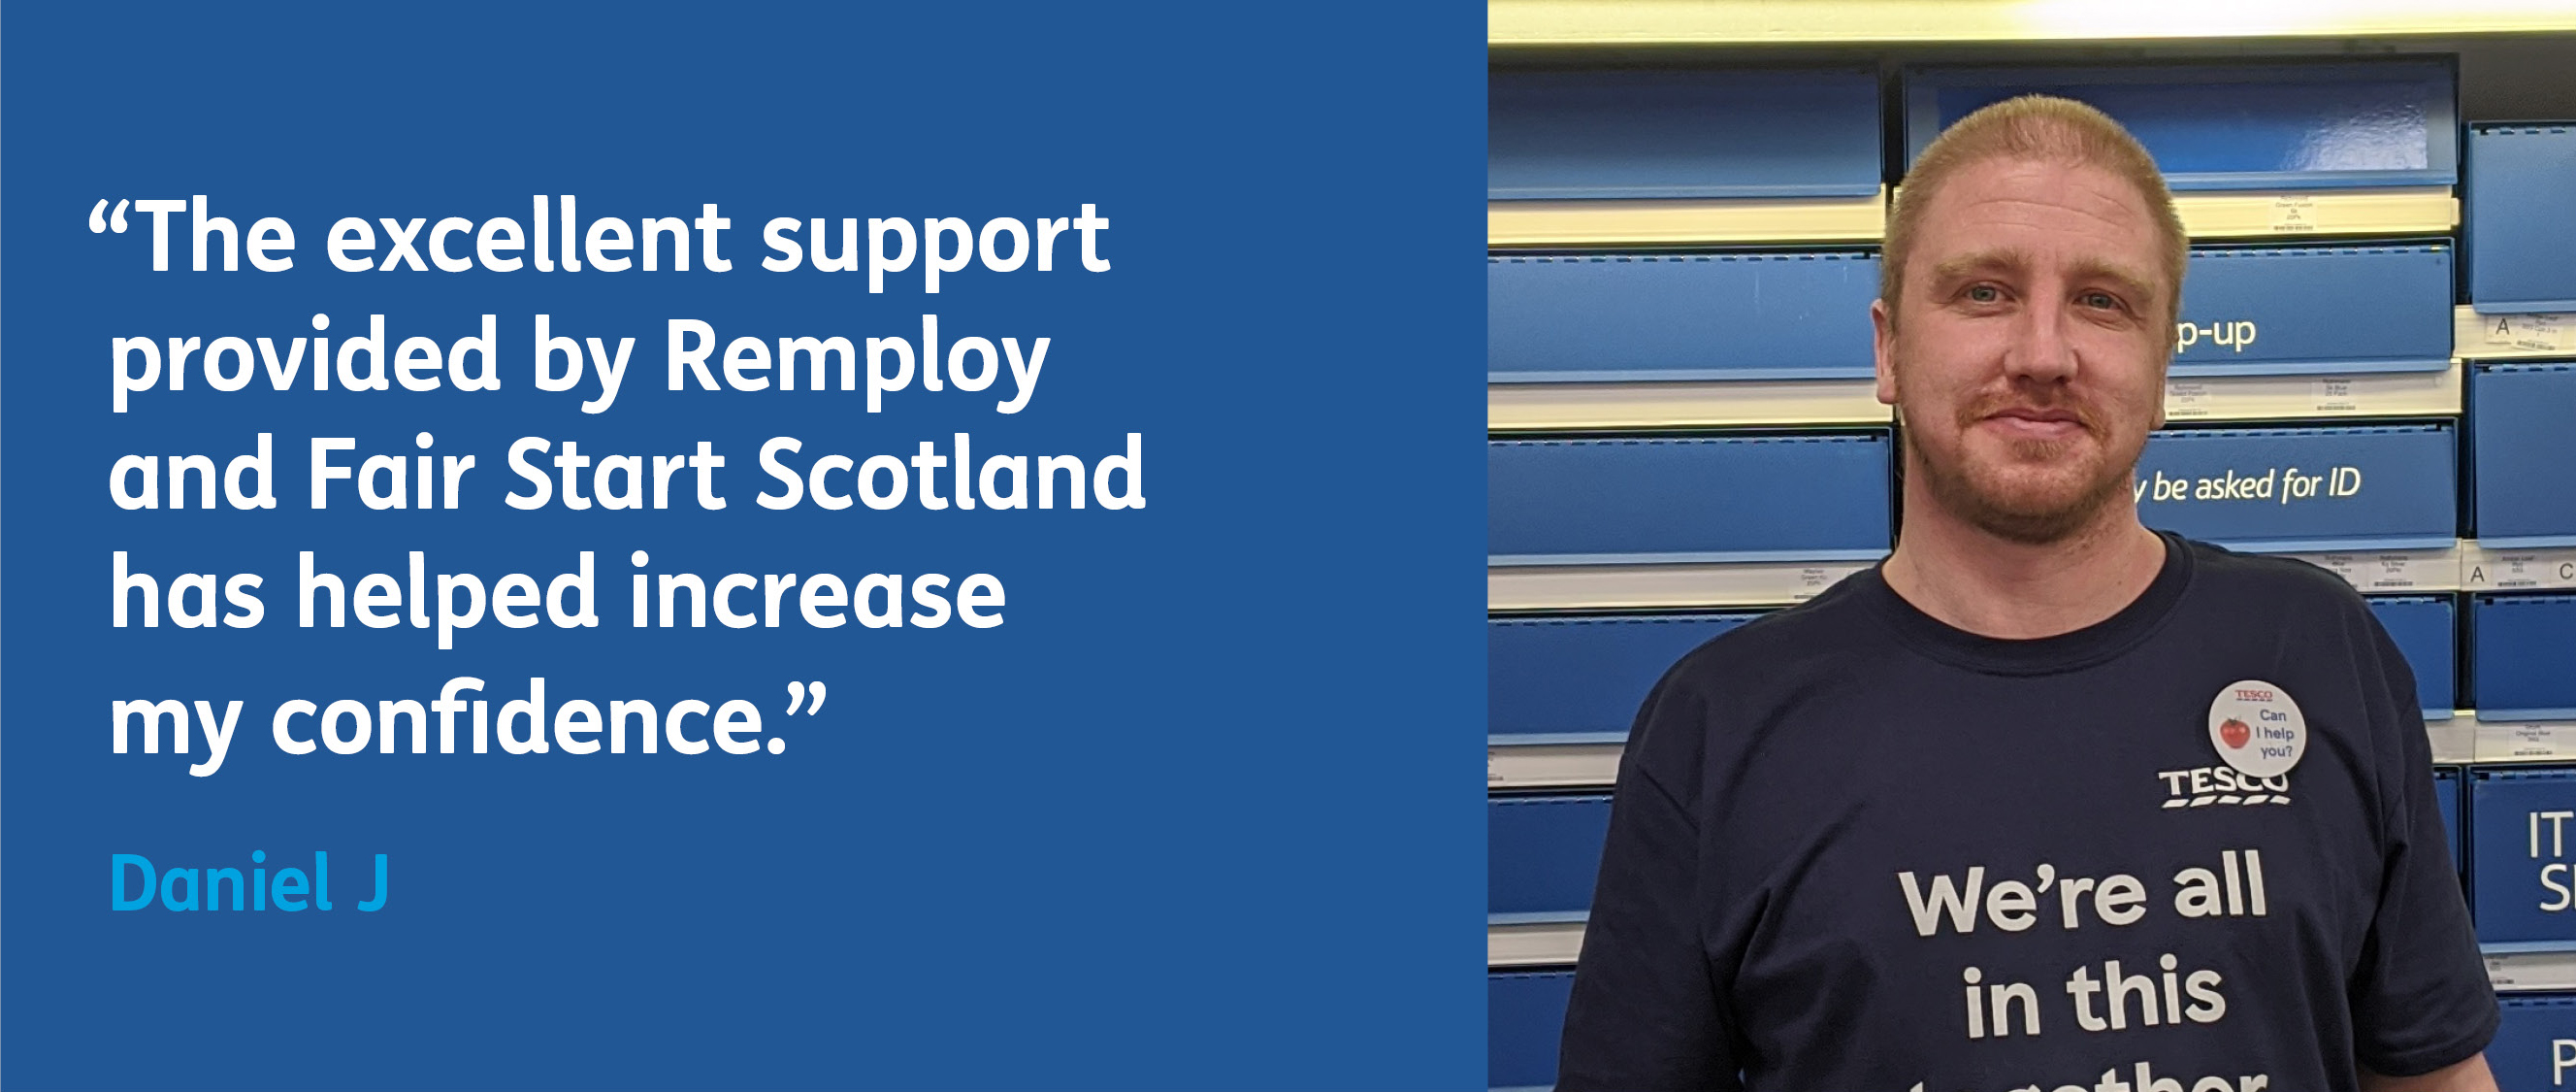 Daniel says: The excellend support provided by Remploy and Fair Start Scotland has helped increase my confidence